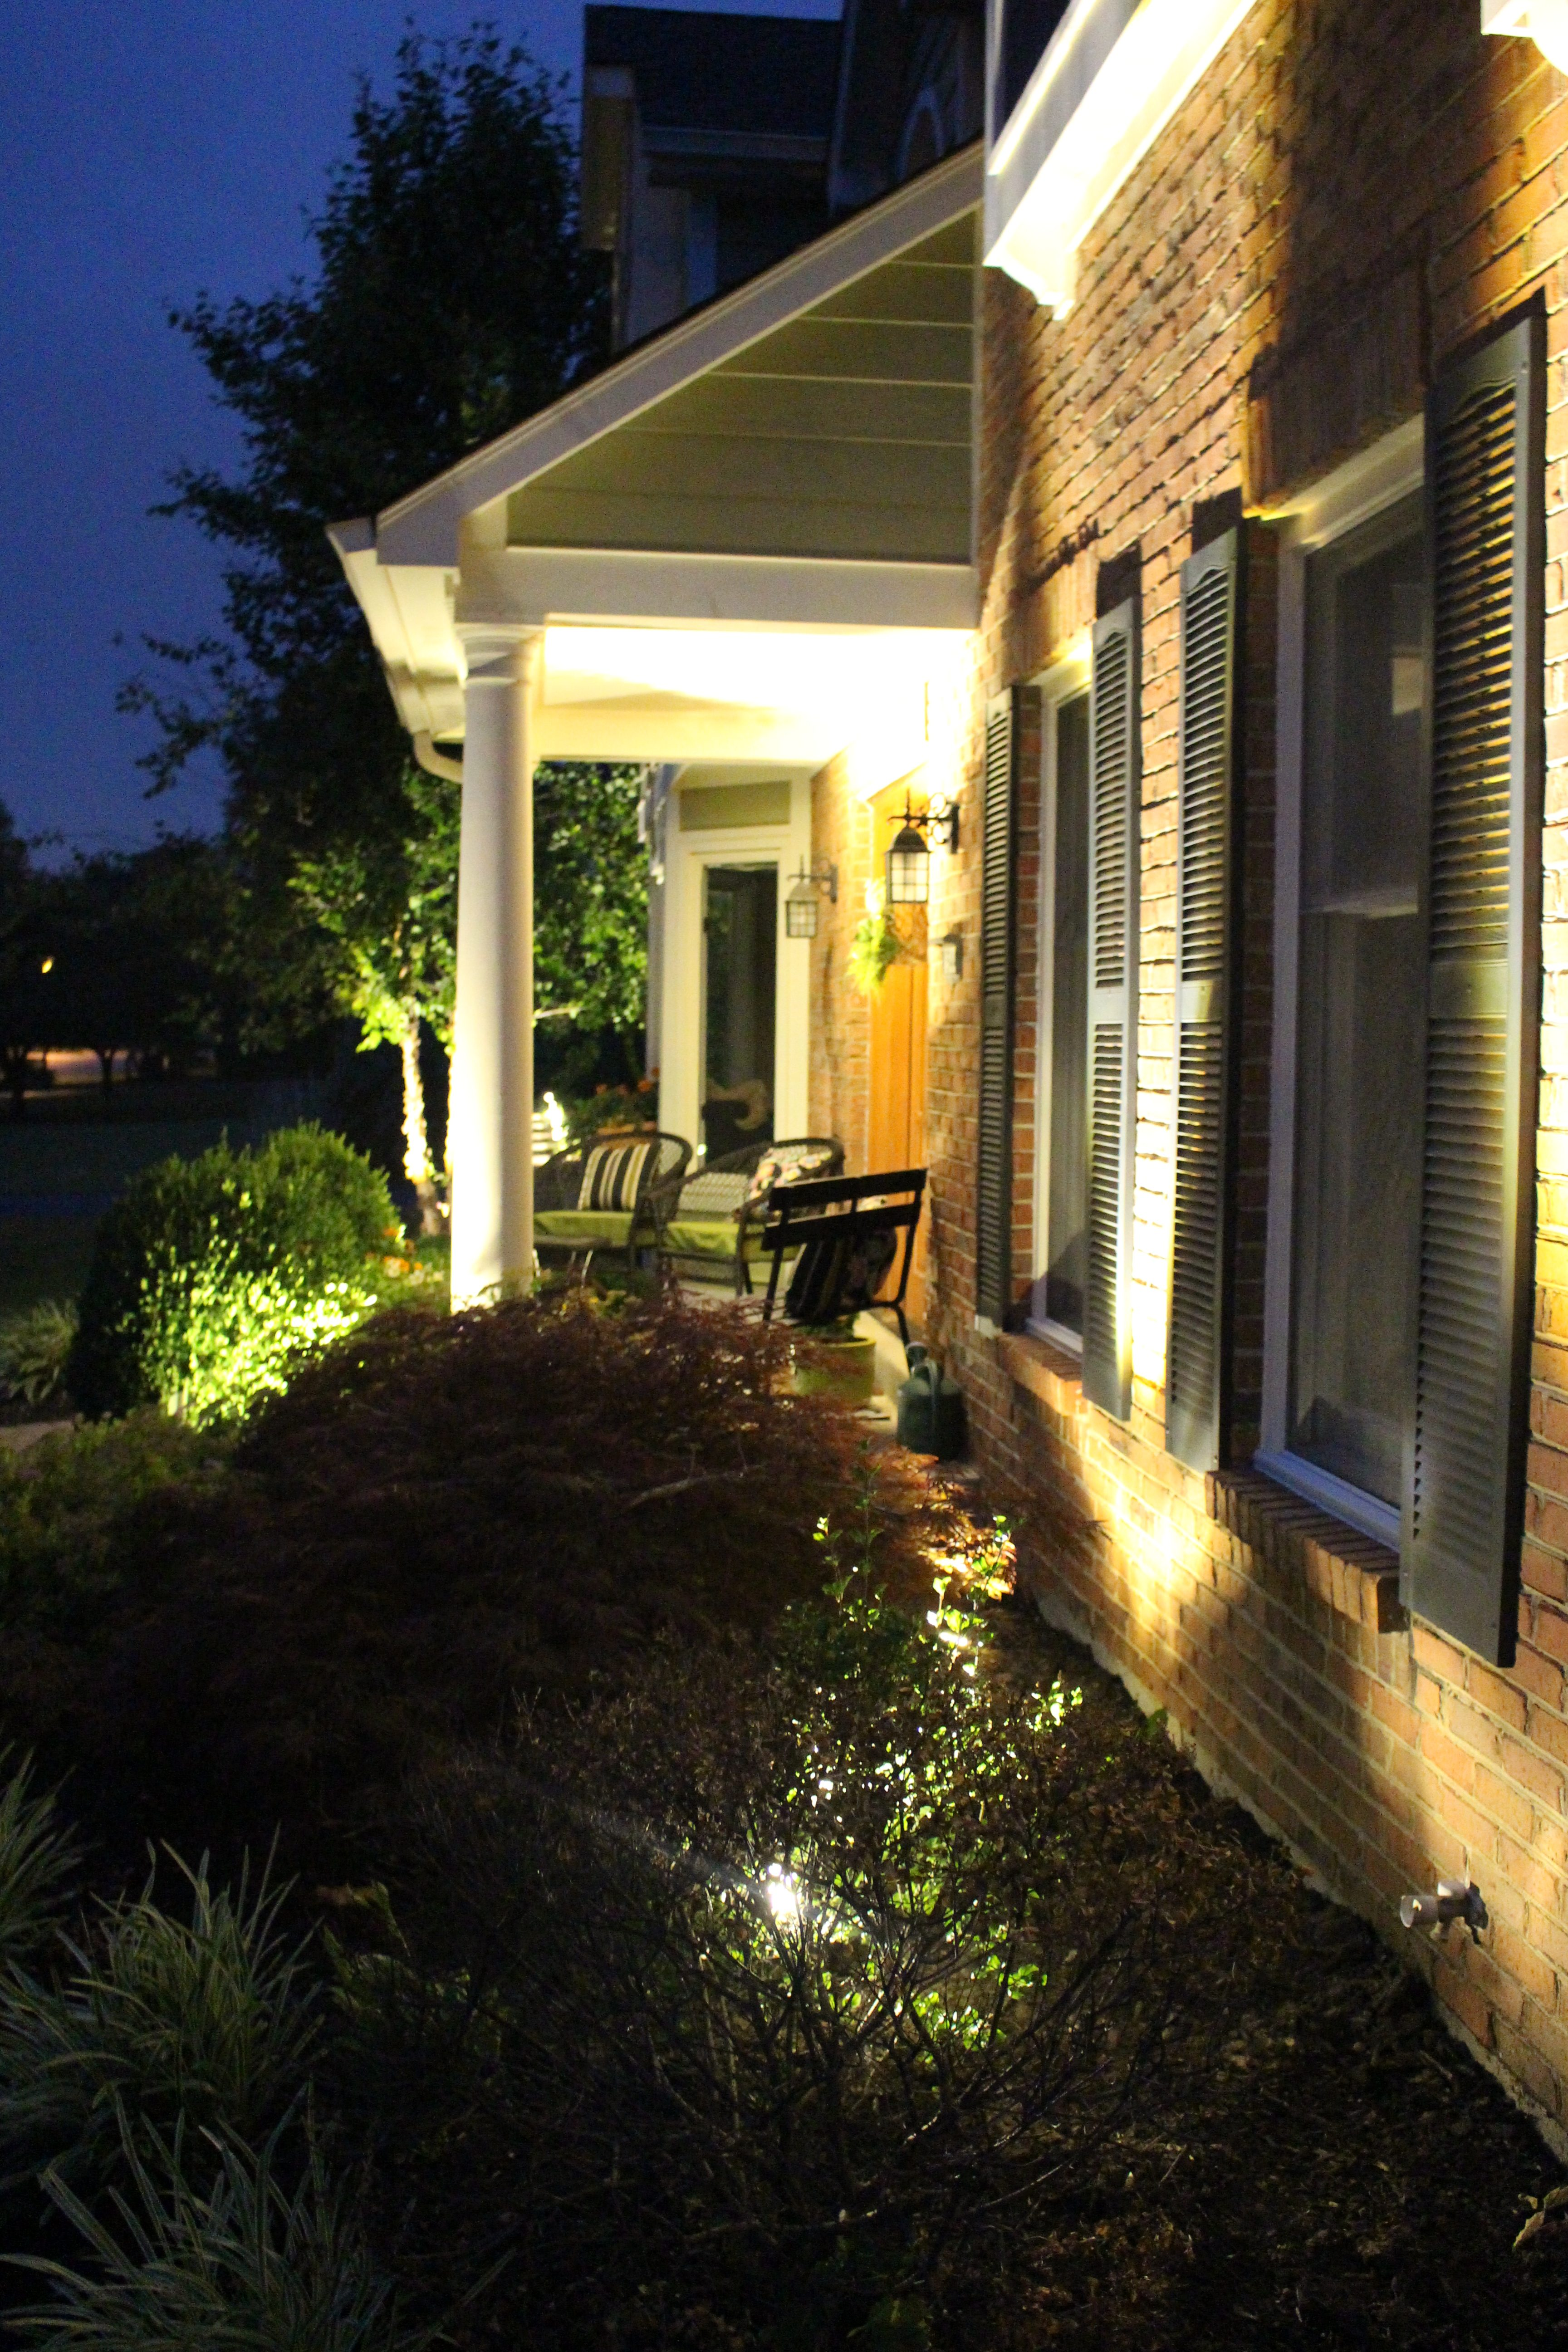 Landscape Lighting Kit from LampsPlus installed for Curb Appeal by www.whitecottagehomeandliving.com